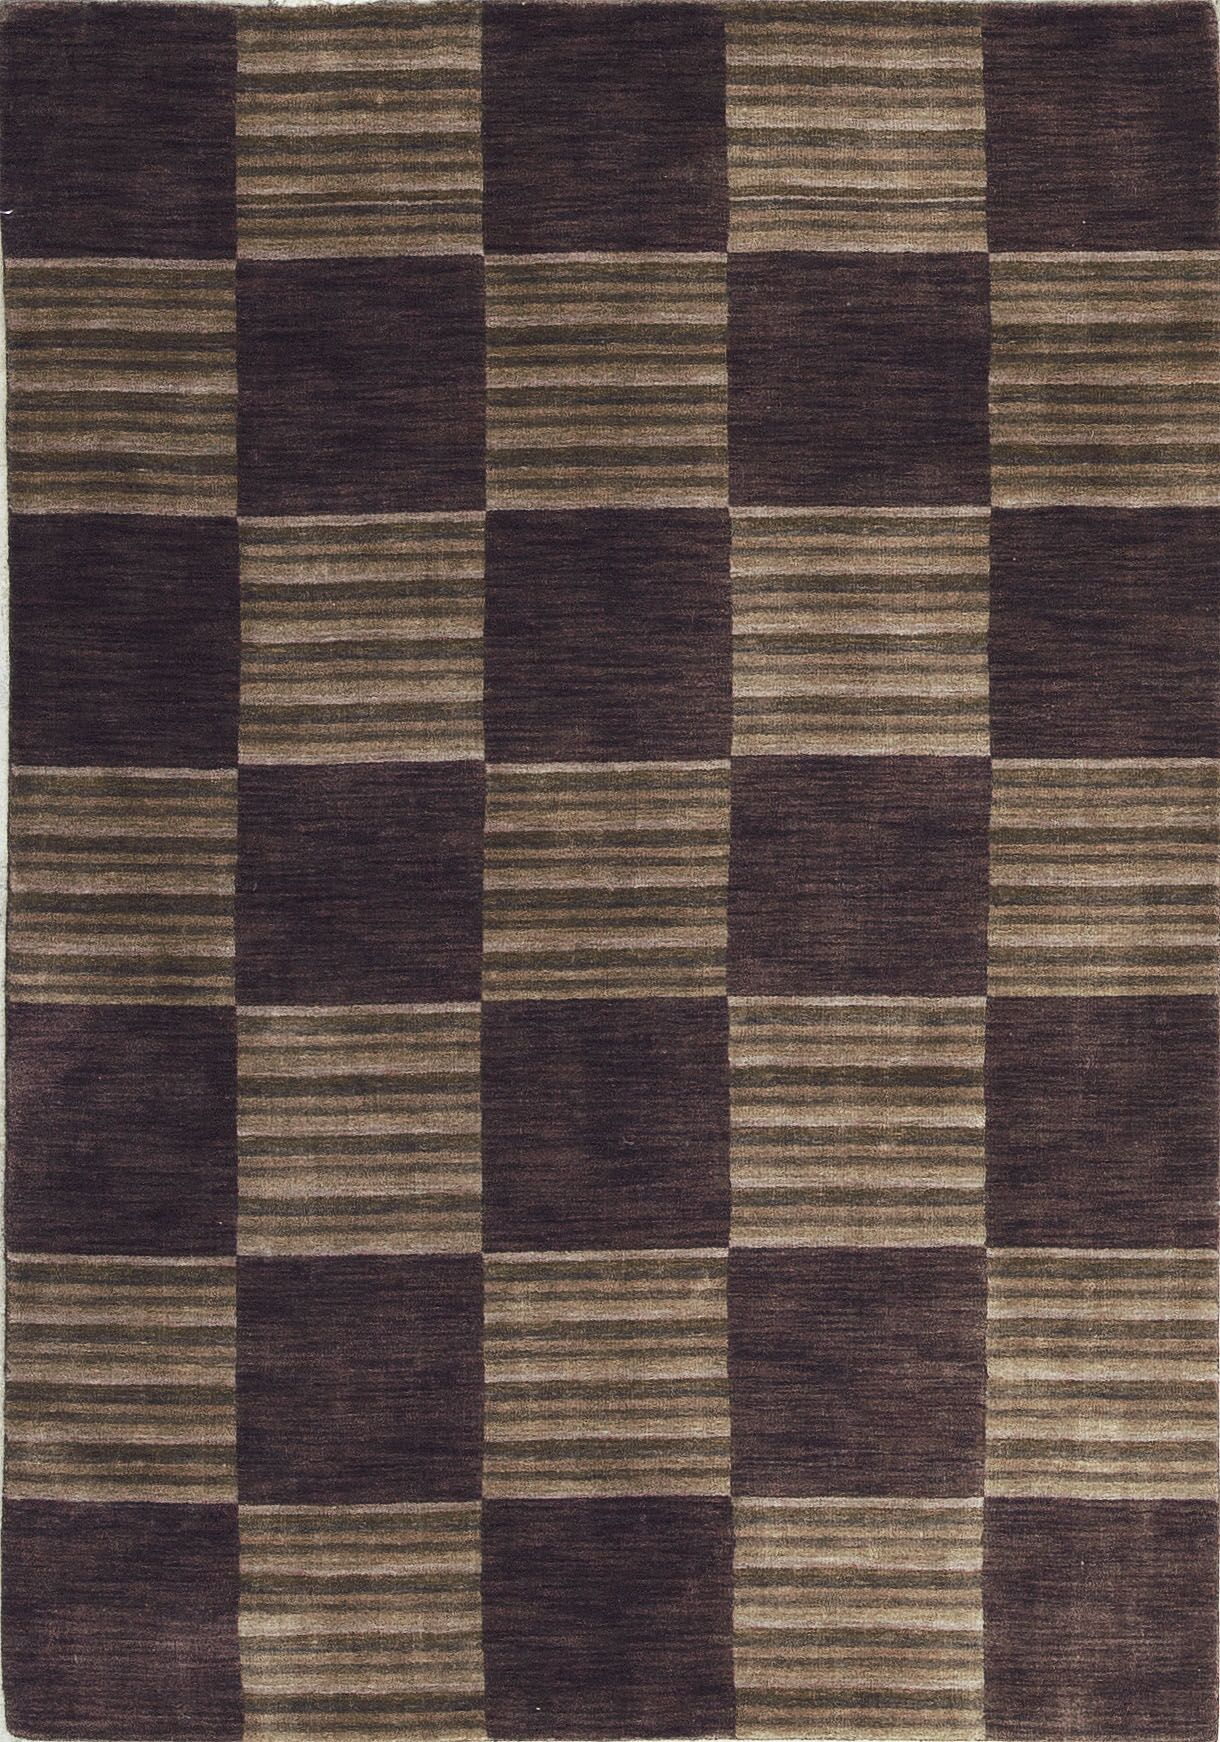 Gabbeh Hand-Knotted Wool Brown Area Rug